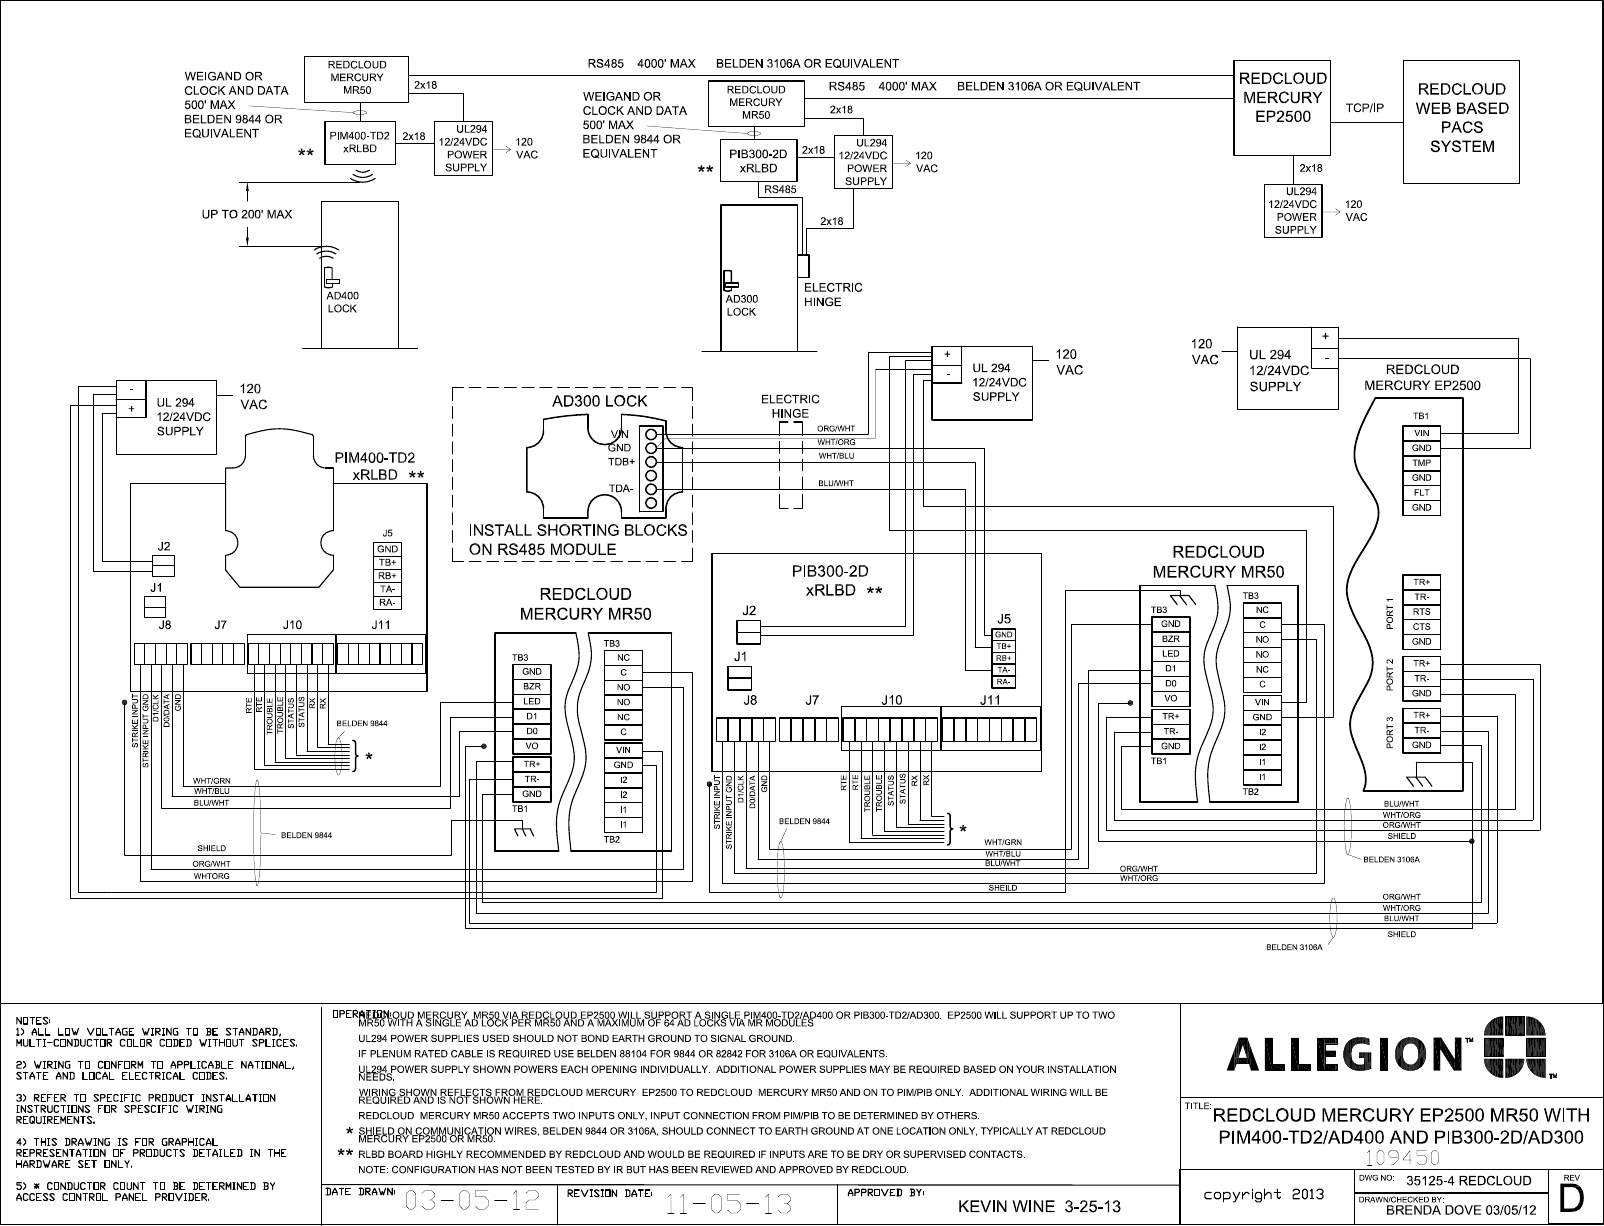 Schlage Electronics C Ad300 Ad400 Wiring Diagram Red Cloud Ep2500 Wiegand Mr50 109450